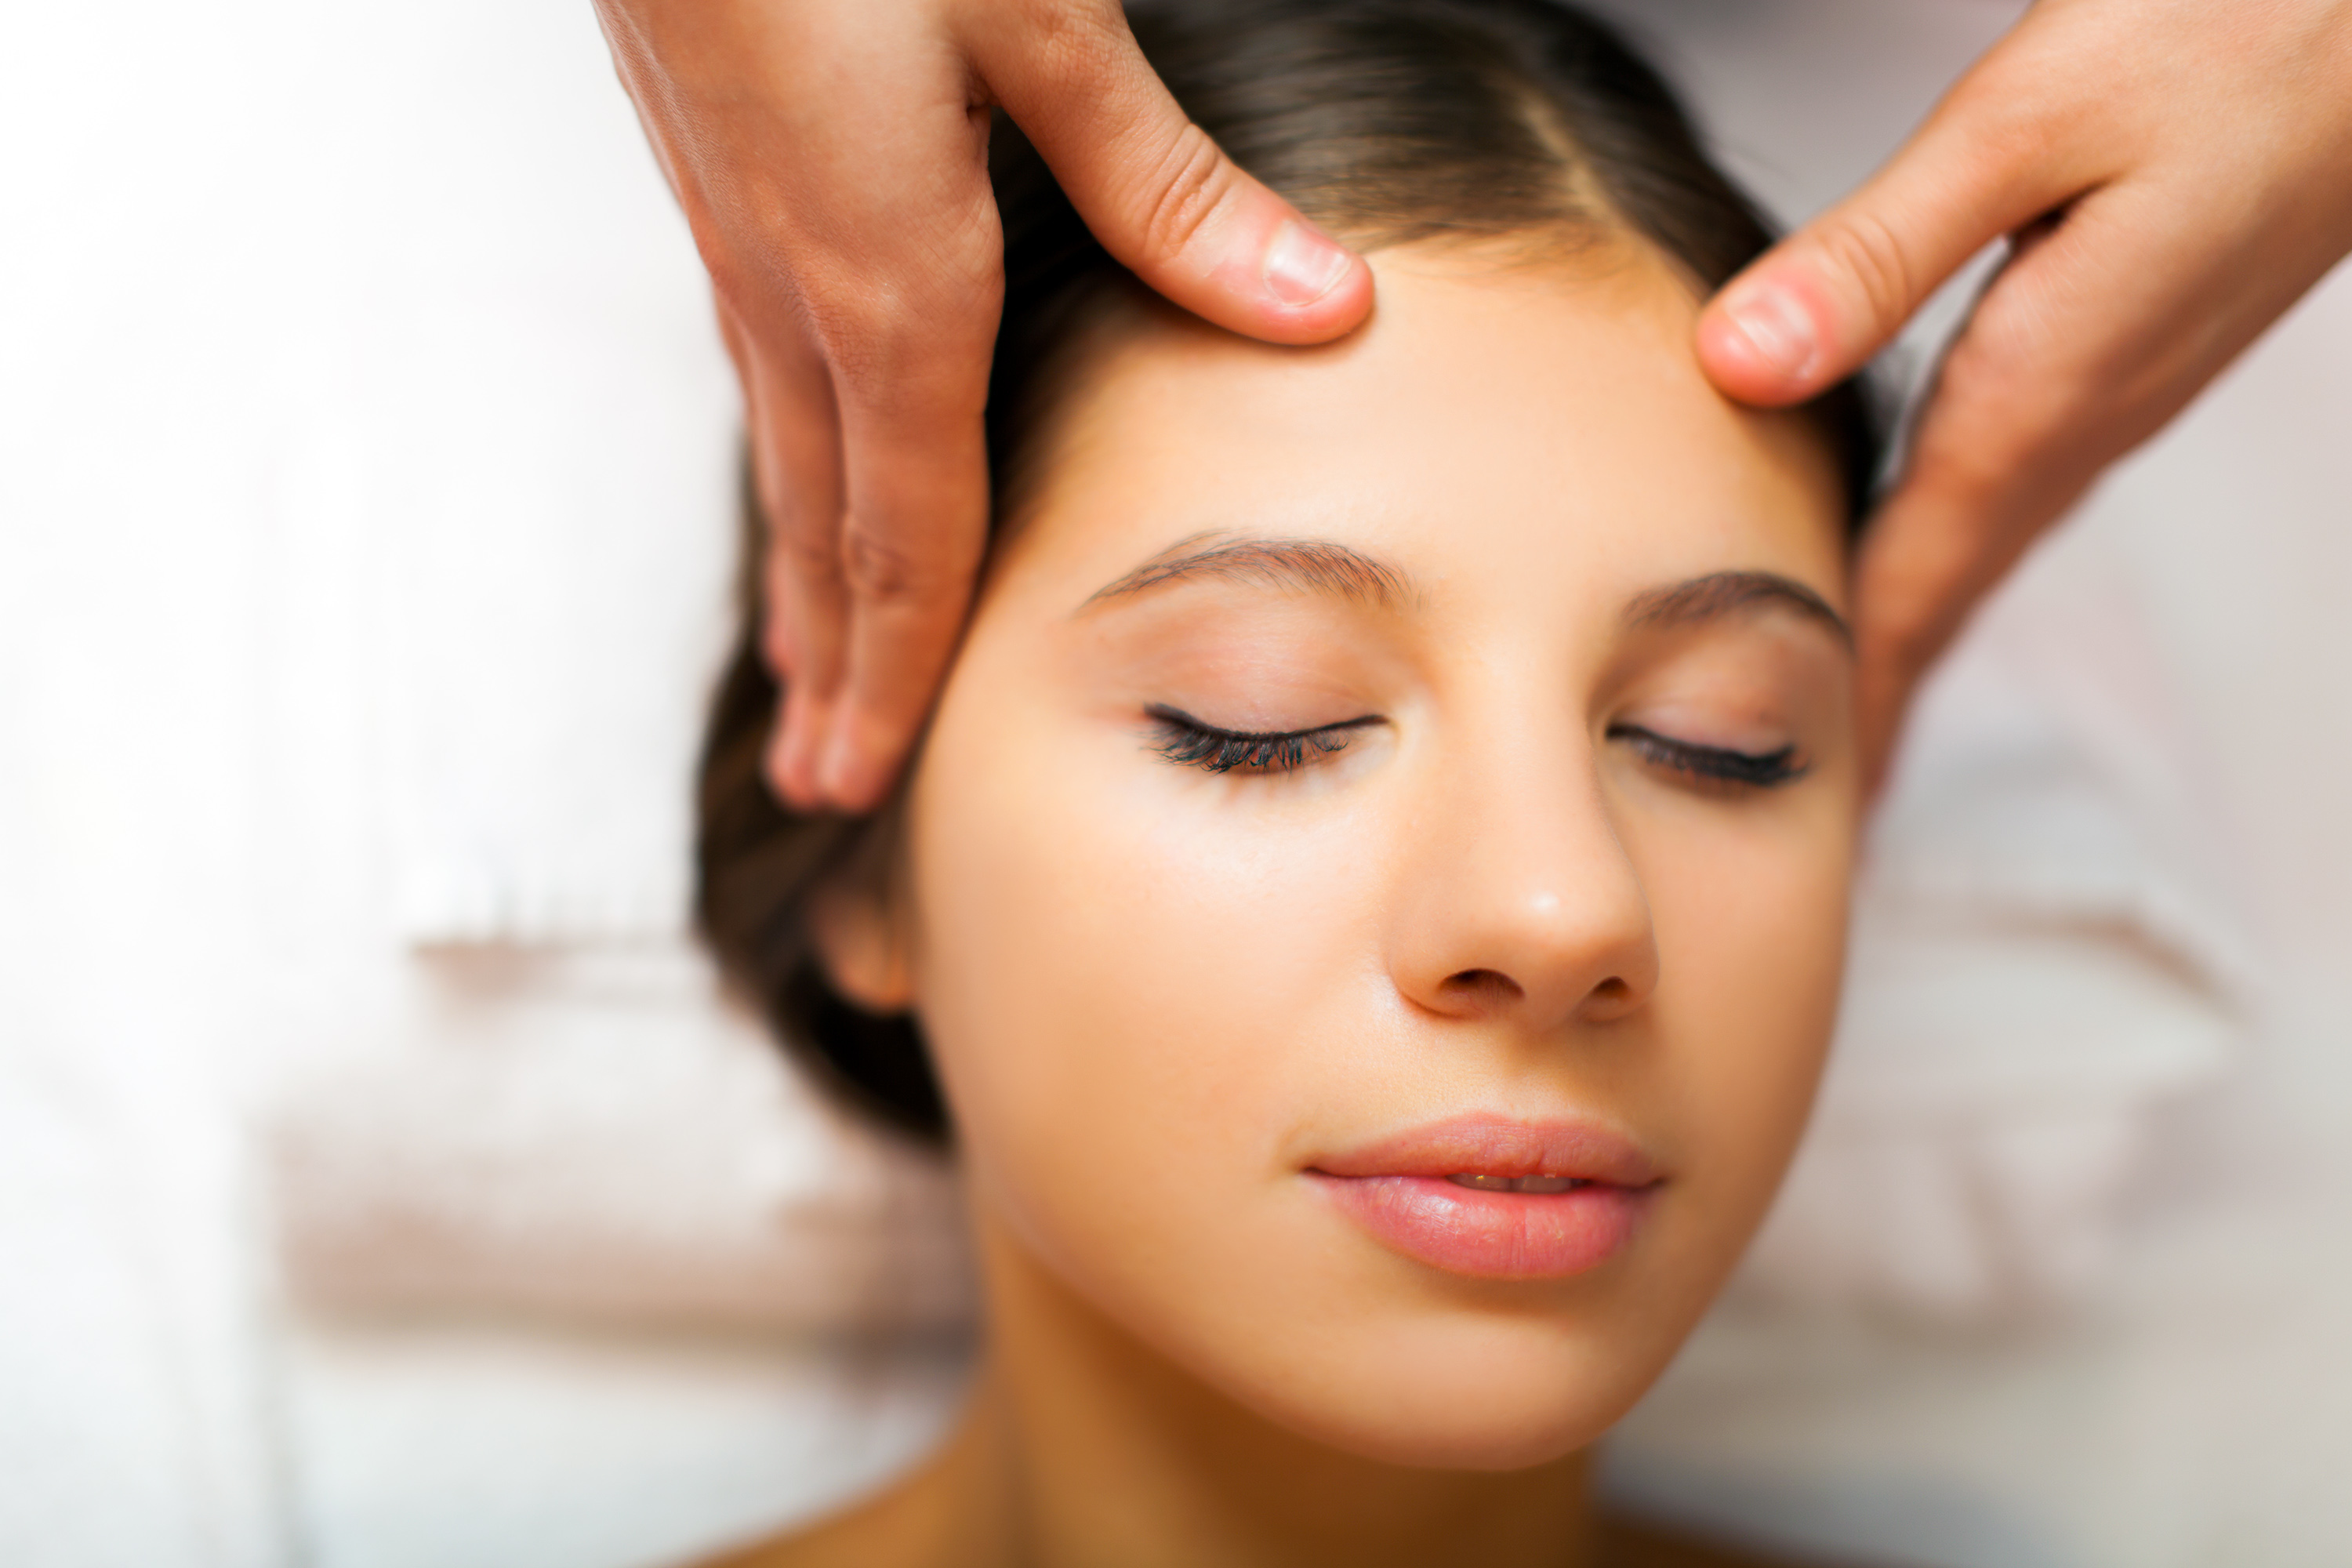 Acupressure Treatment For Eye Twitches Livestrong